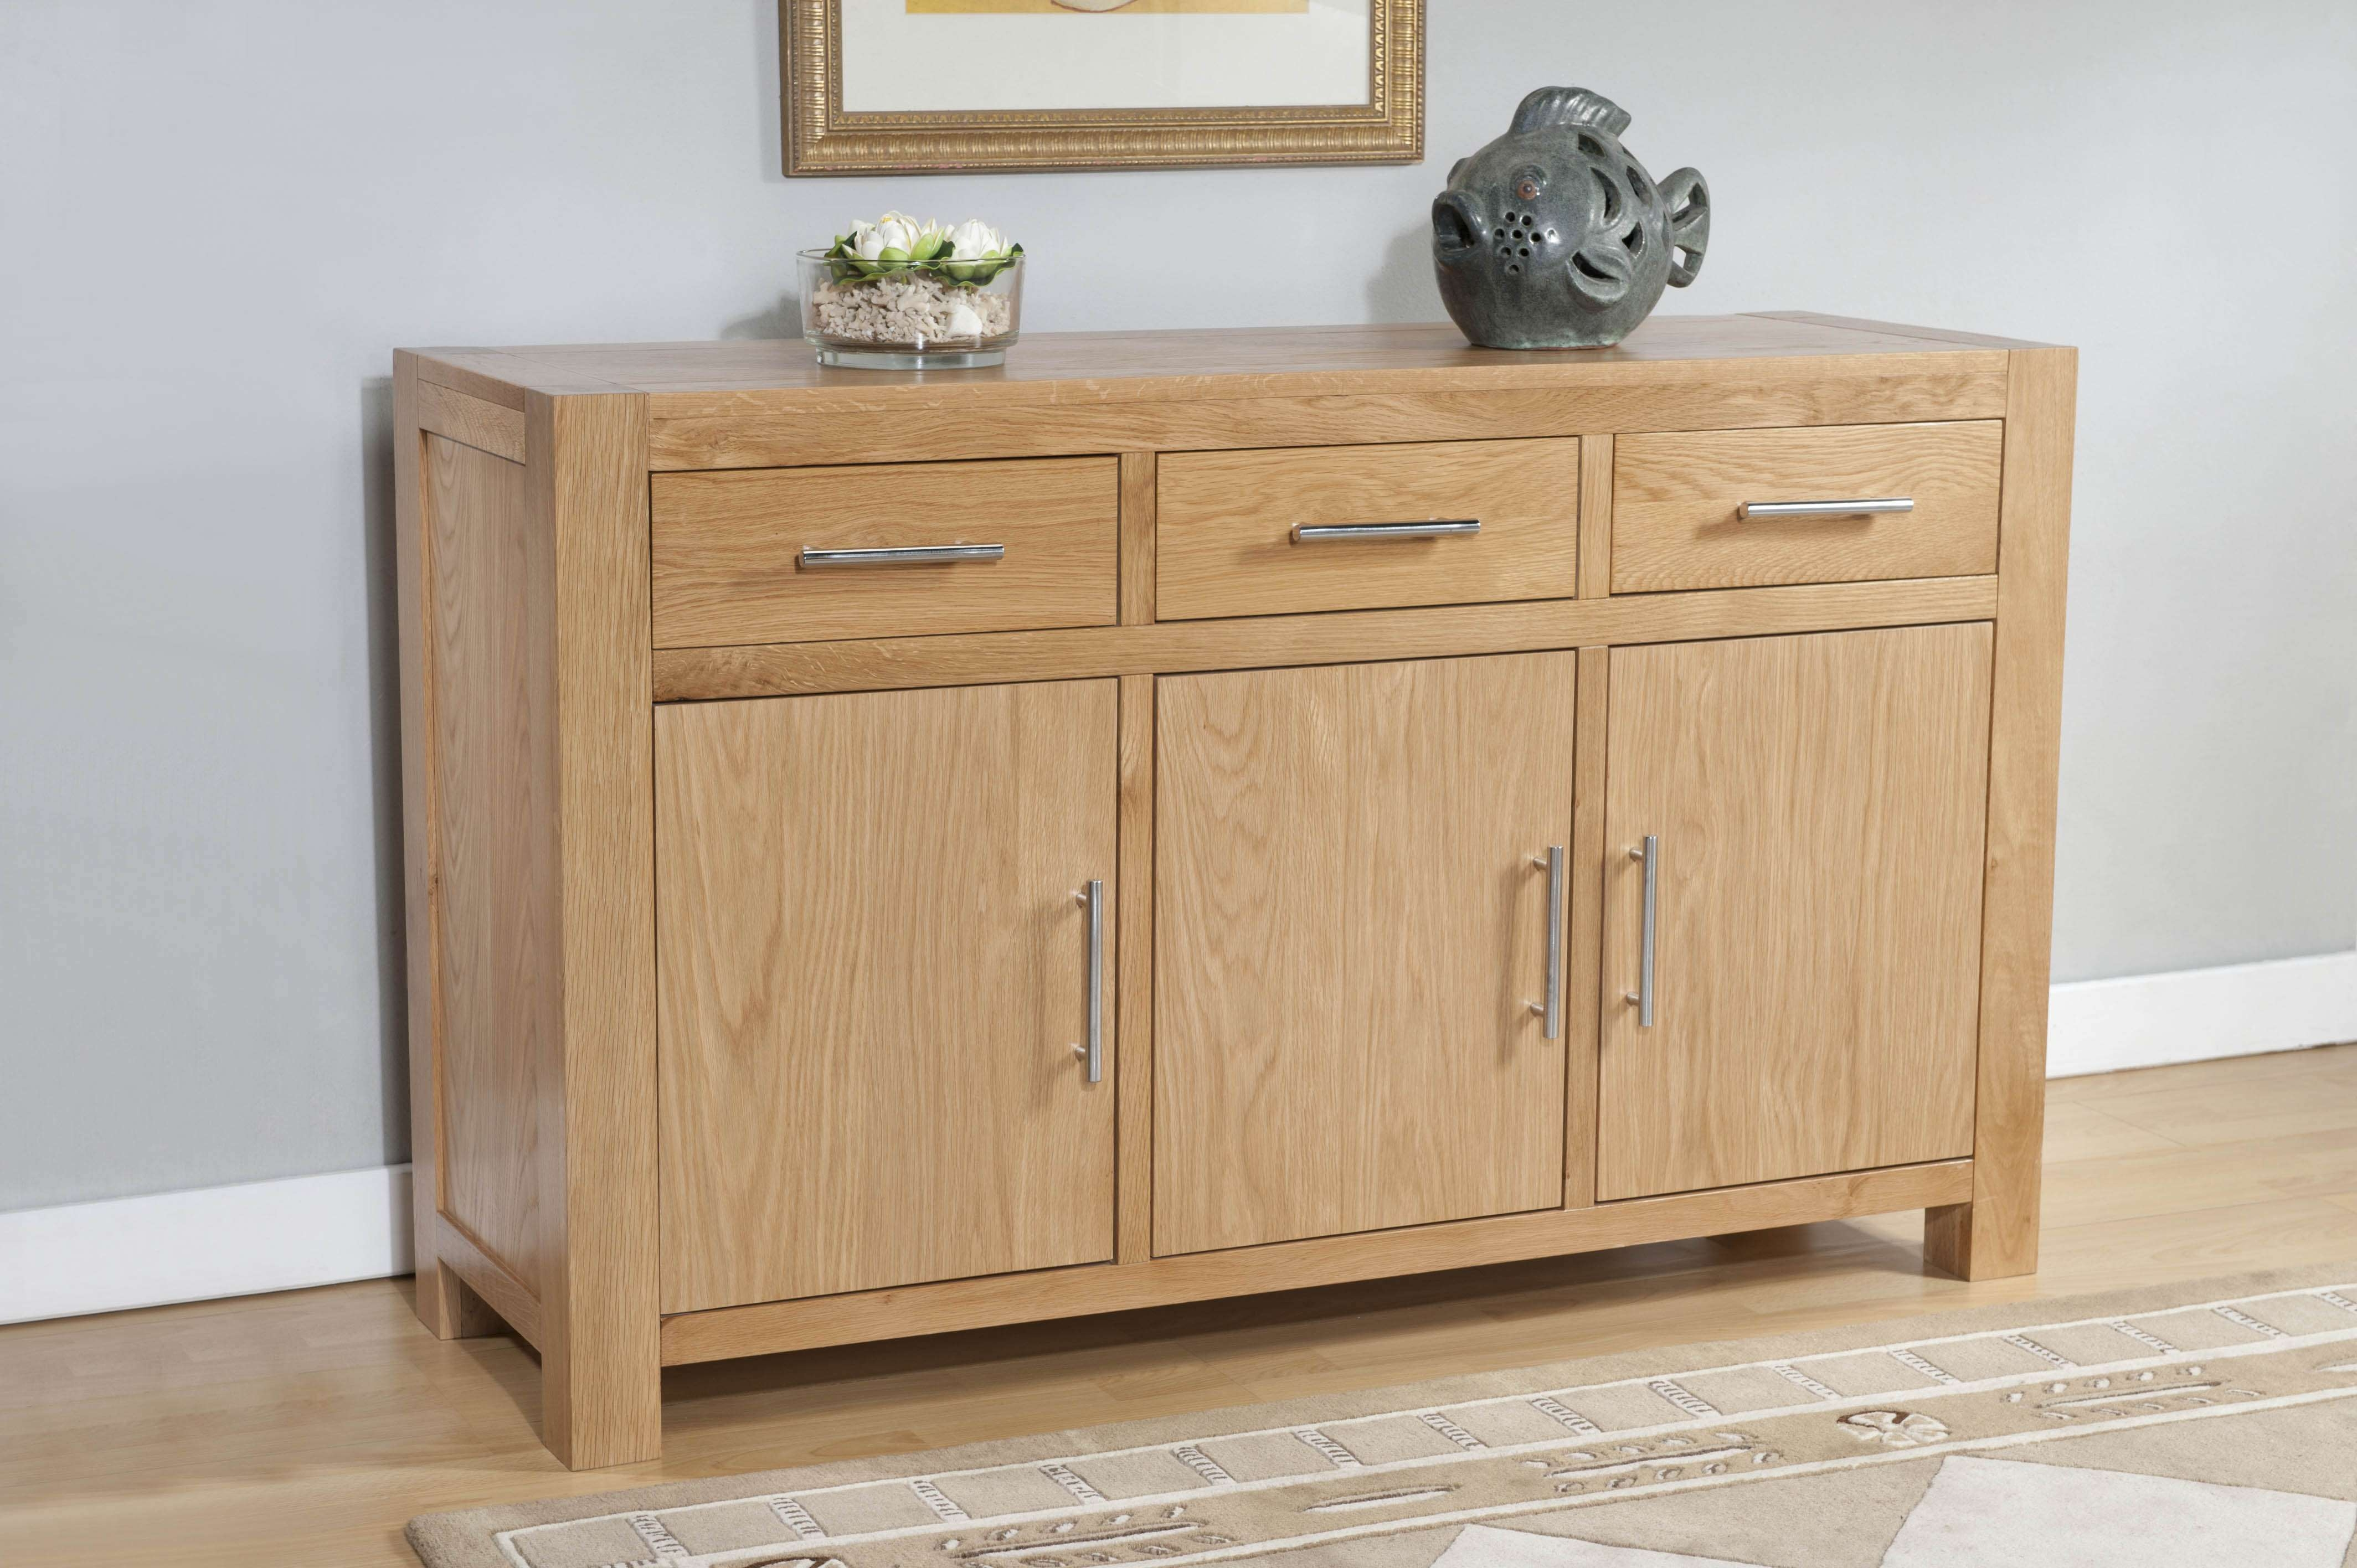 Milano Oak 3 Door 3 Drawer Large Sideboard | Oak Furniture Solutions Within Sideboards With Drawers (View 2 of 20)